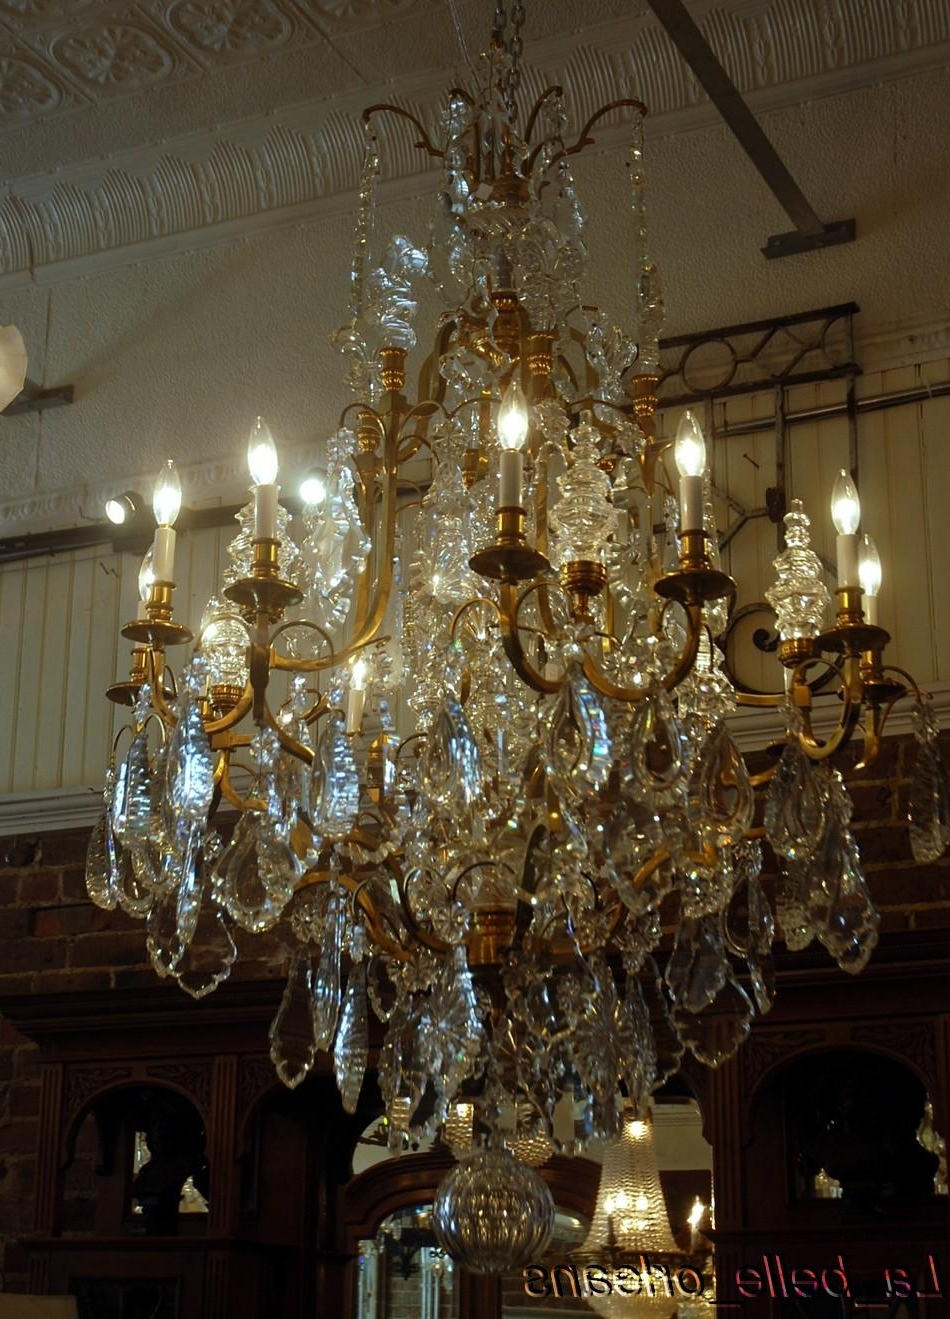 French Crystal Chandeliers Within Recent Monumental Pair French Crystal & Bronze Chandeliers For Sale (View 11 of 20)